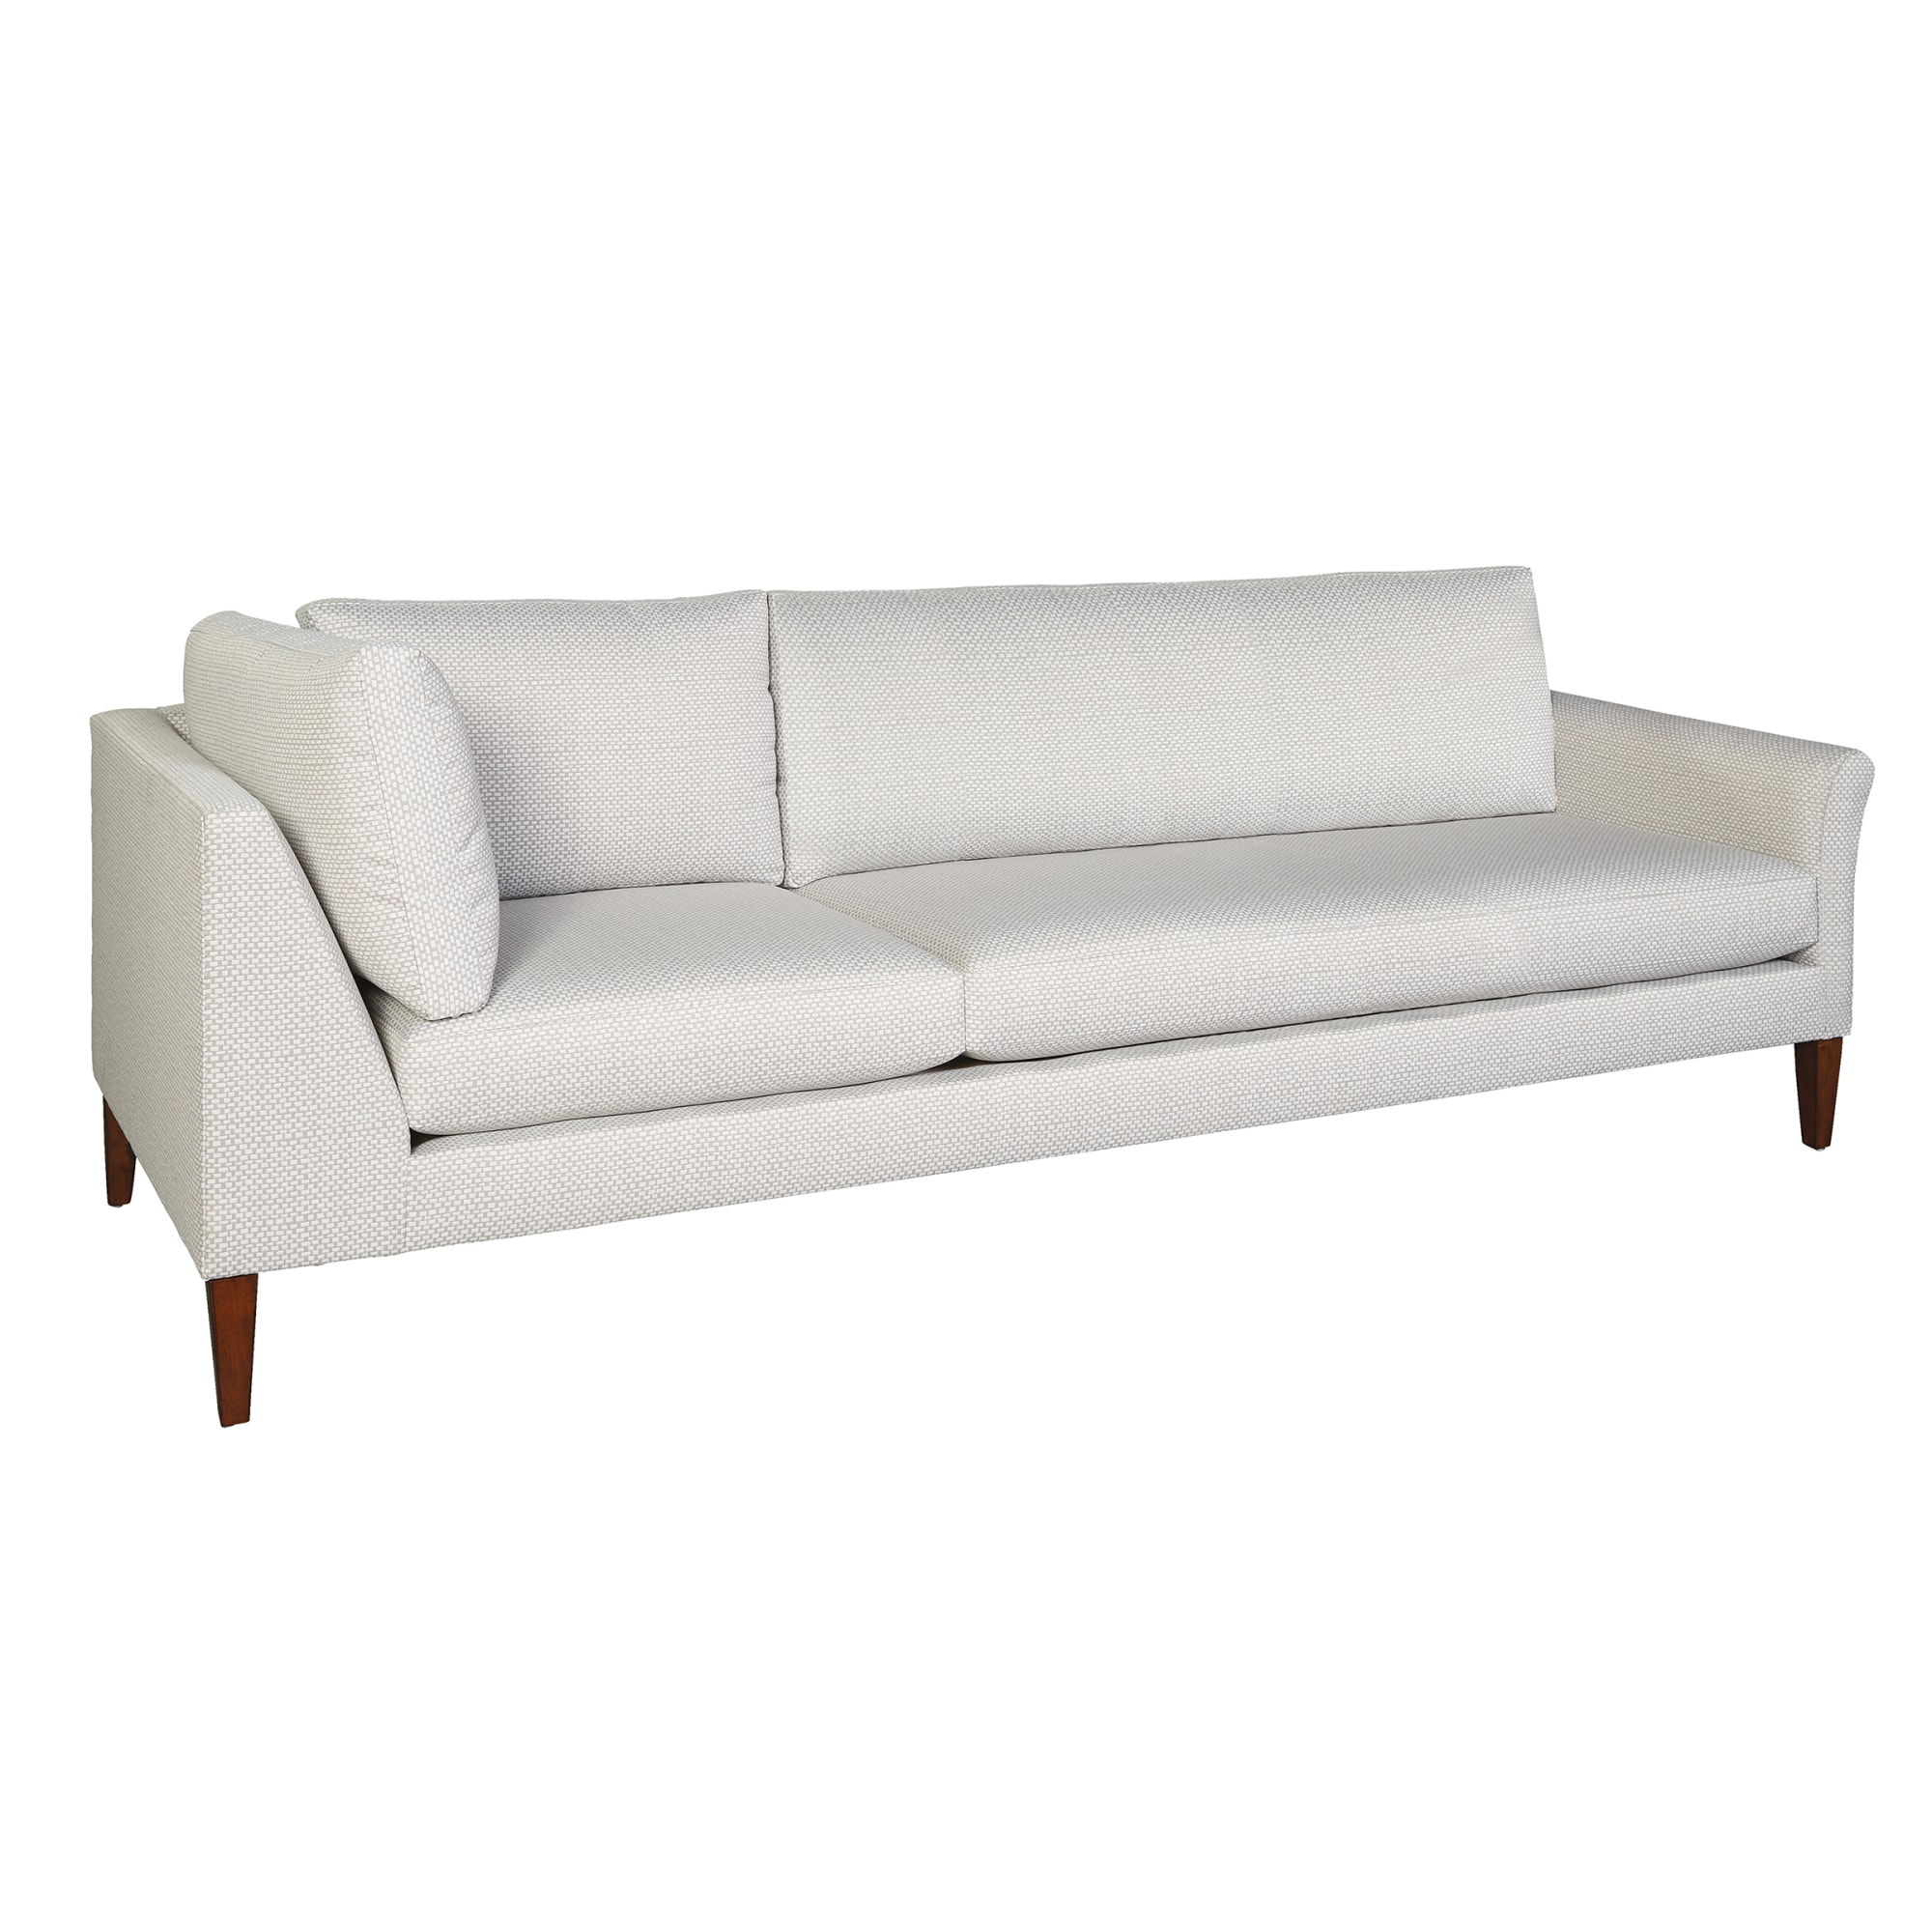 Image for 174390 Metro Flared Arm Corner Sofa RAF from Hekman Official Website